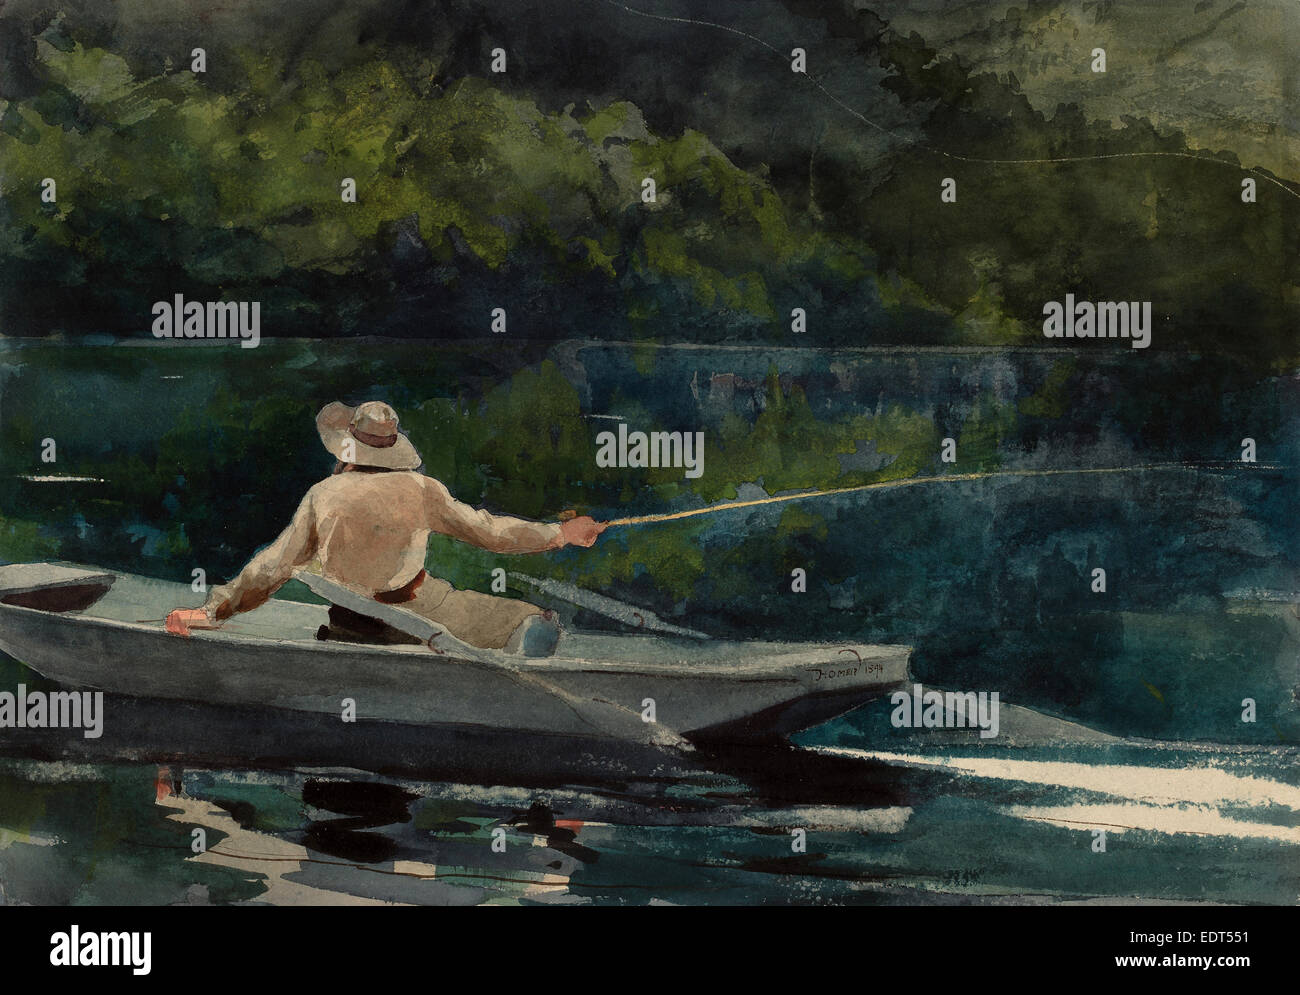 Winslow Homer, Casting, Number Two, American, 1836 - 1910, 1894, watercolor over graphite - Stock Image